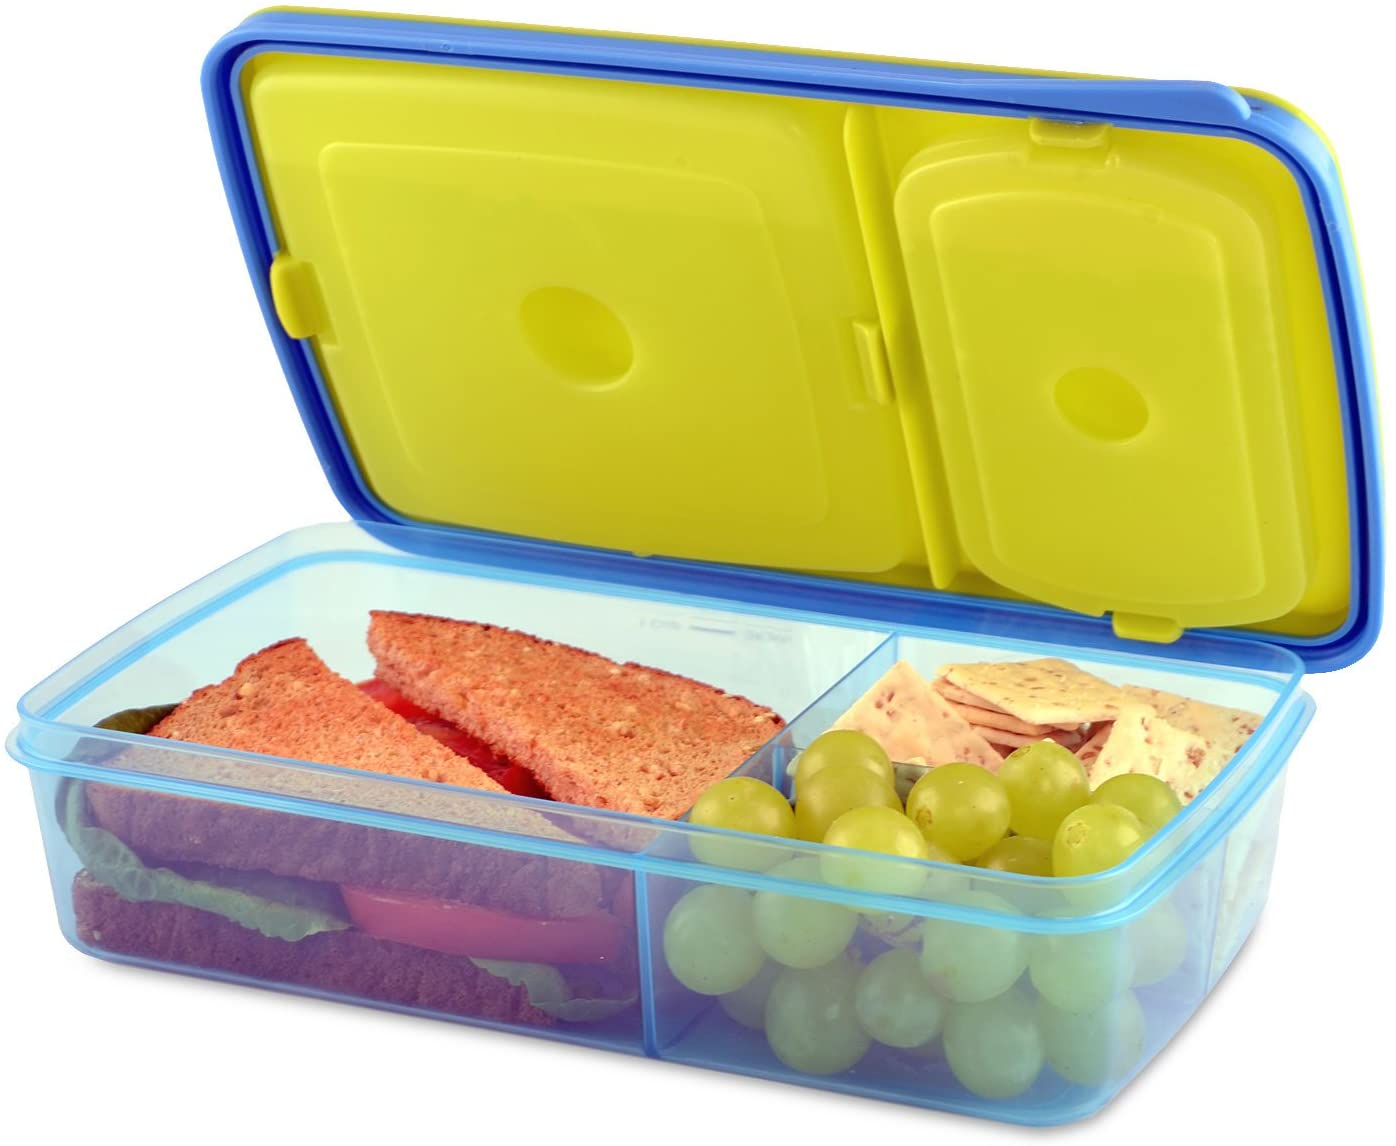 Fit & Fresh Kids' Reusable Divided Meal Carrier with Removable Ice Packs, Bento Box Lunch Container with 3 Food Storage Compartments, BPA-Free, Microwave/Dishwasher Safe, Assorted Colors